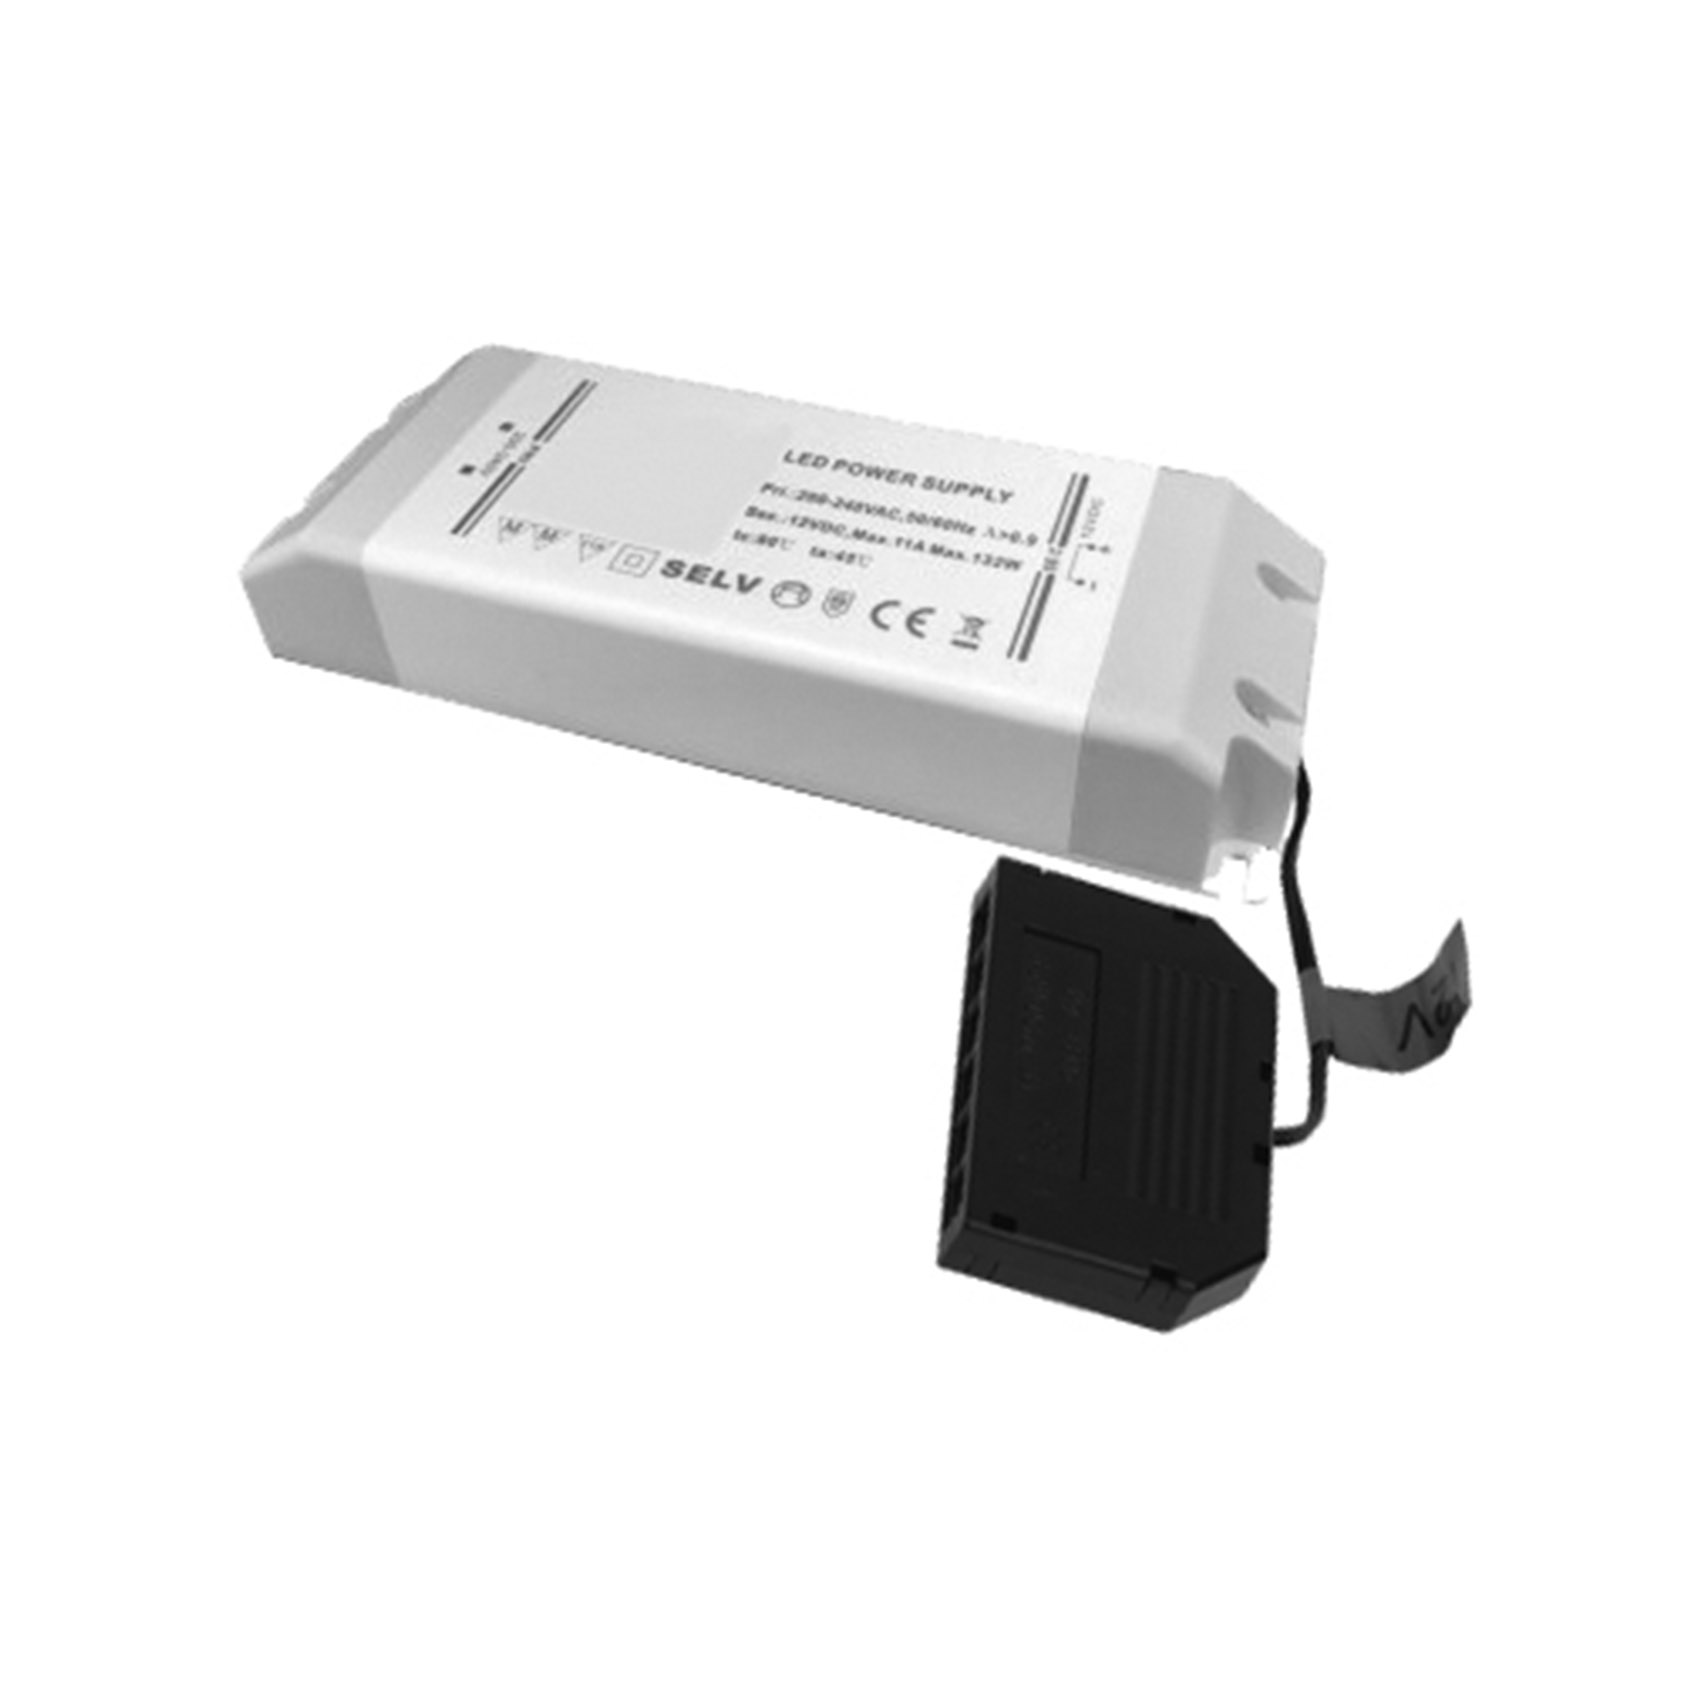 Driver 132w 12v LED Driver 132w For Single Colour, CCT, & RGB Controllers